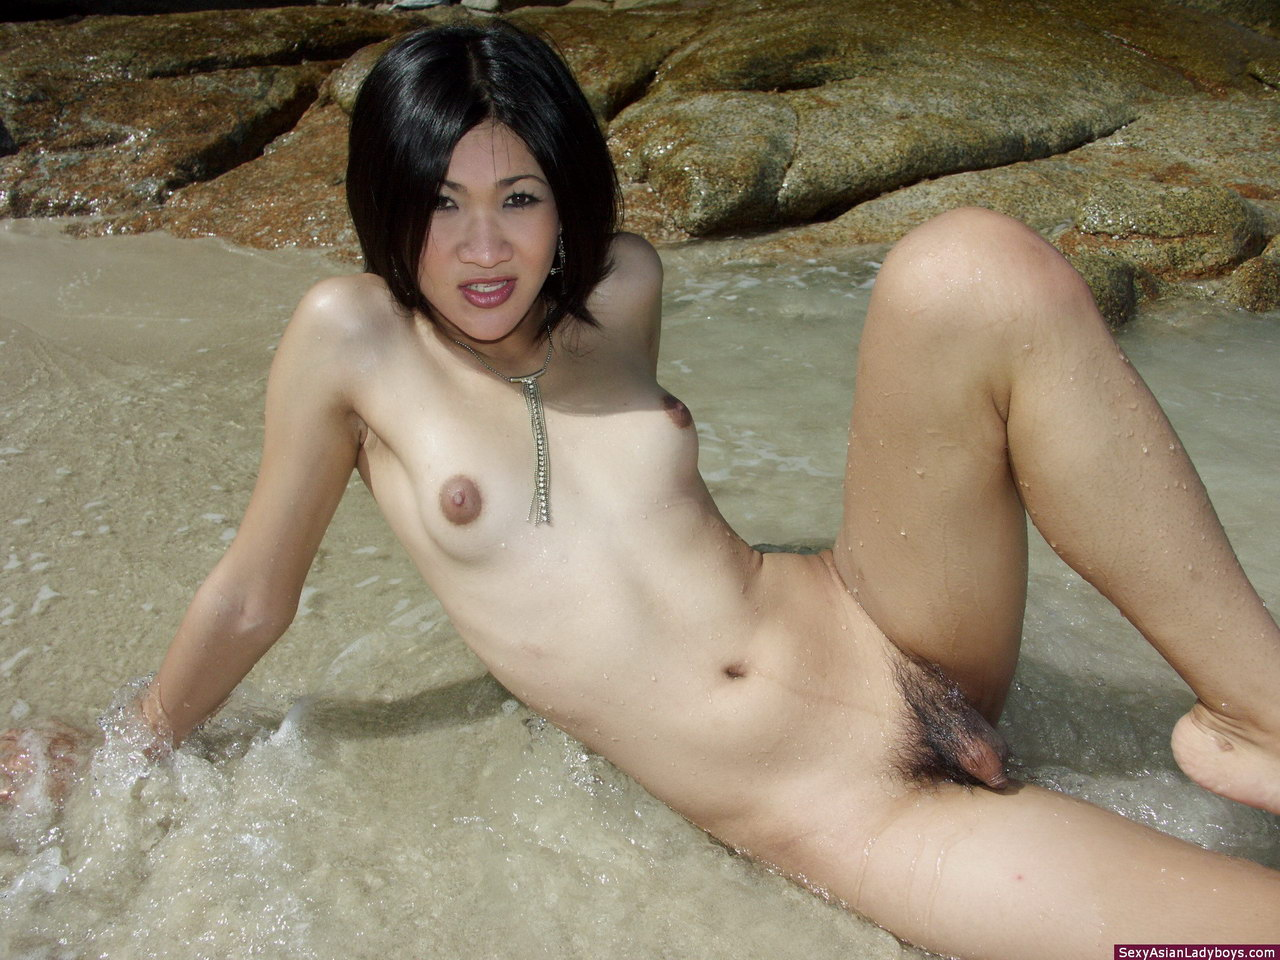 Shemale on nudist beach